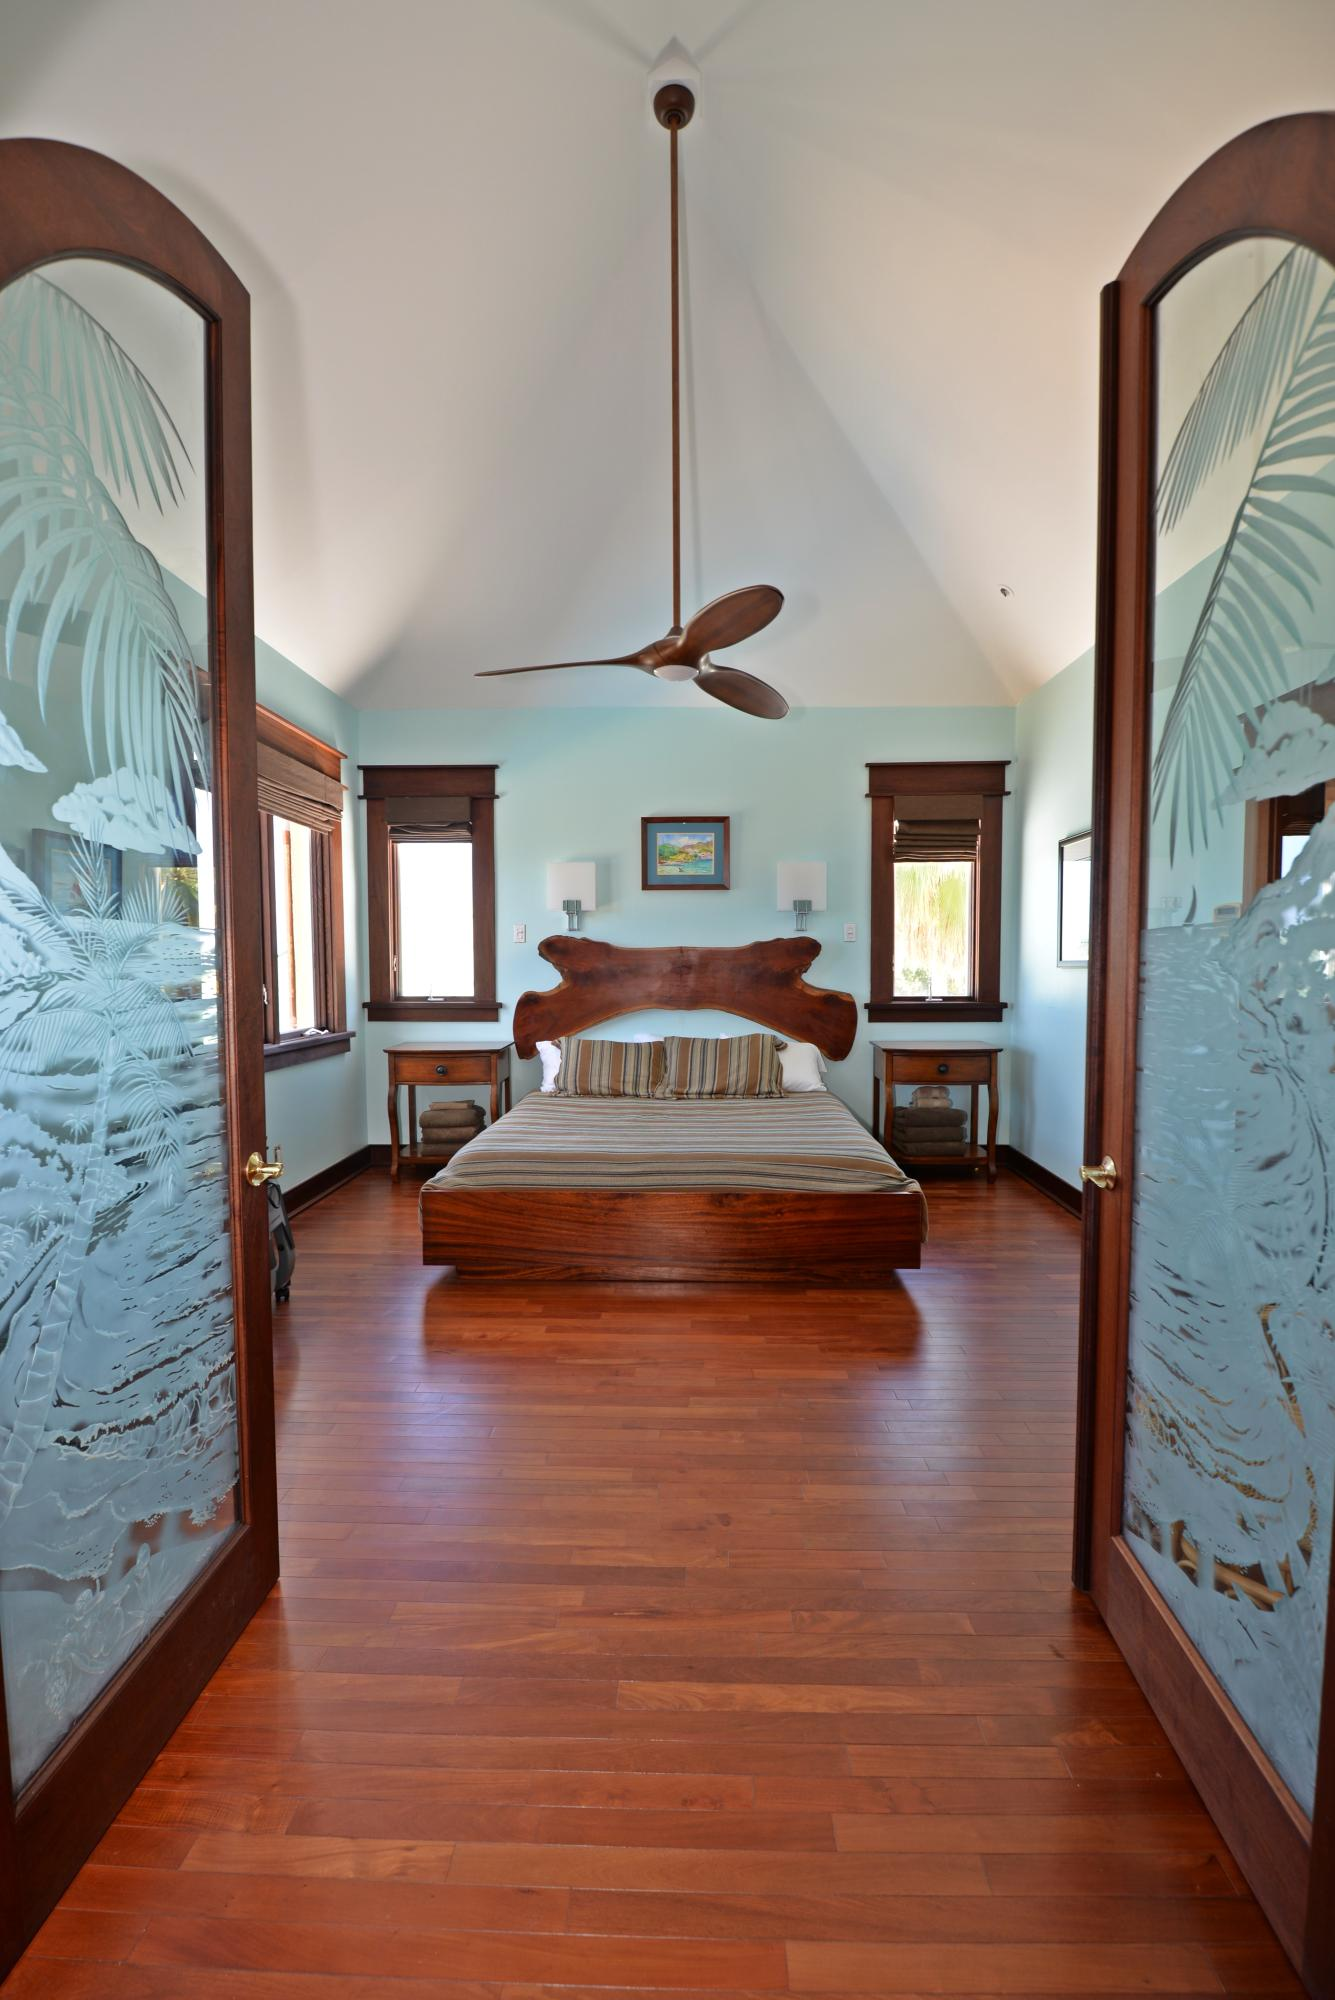 Grand entry to master bedroom suite